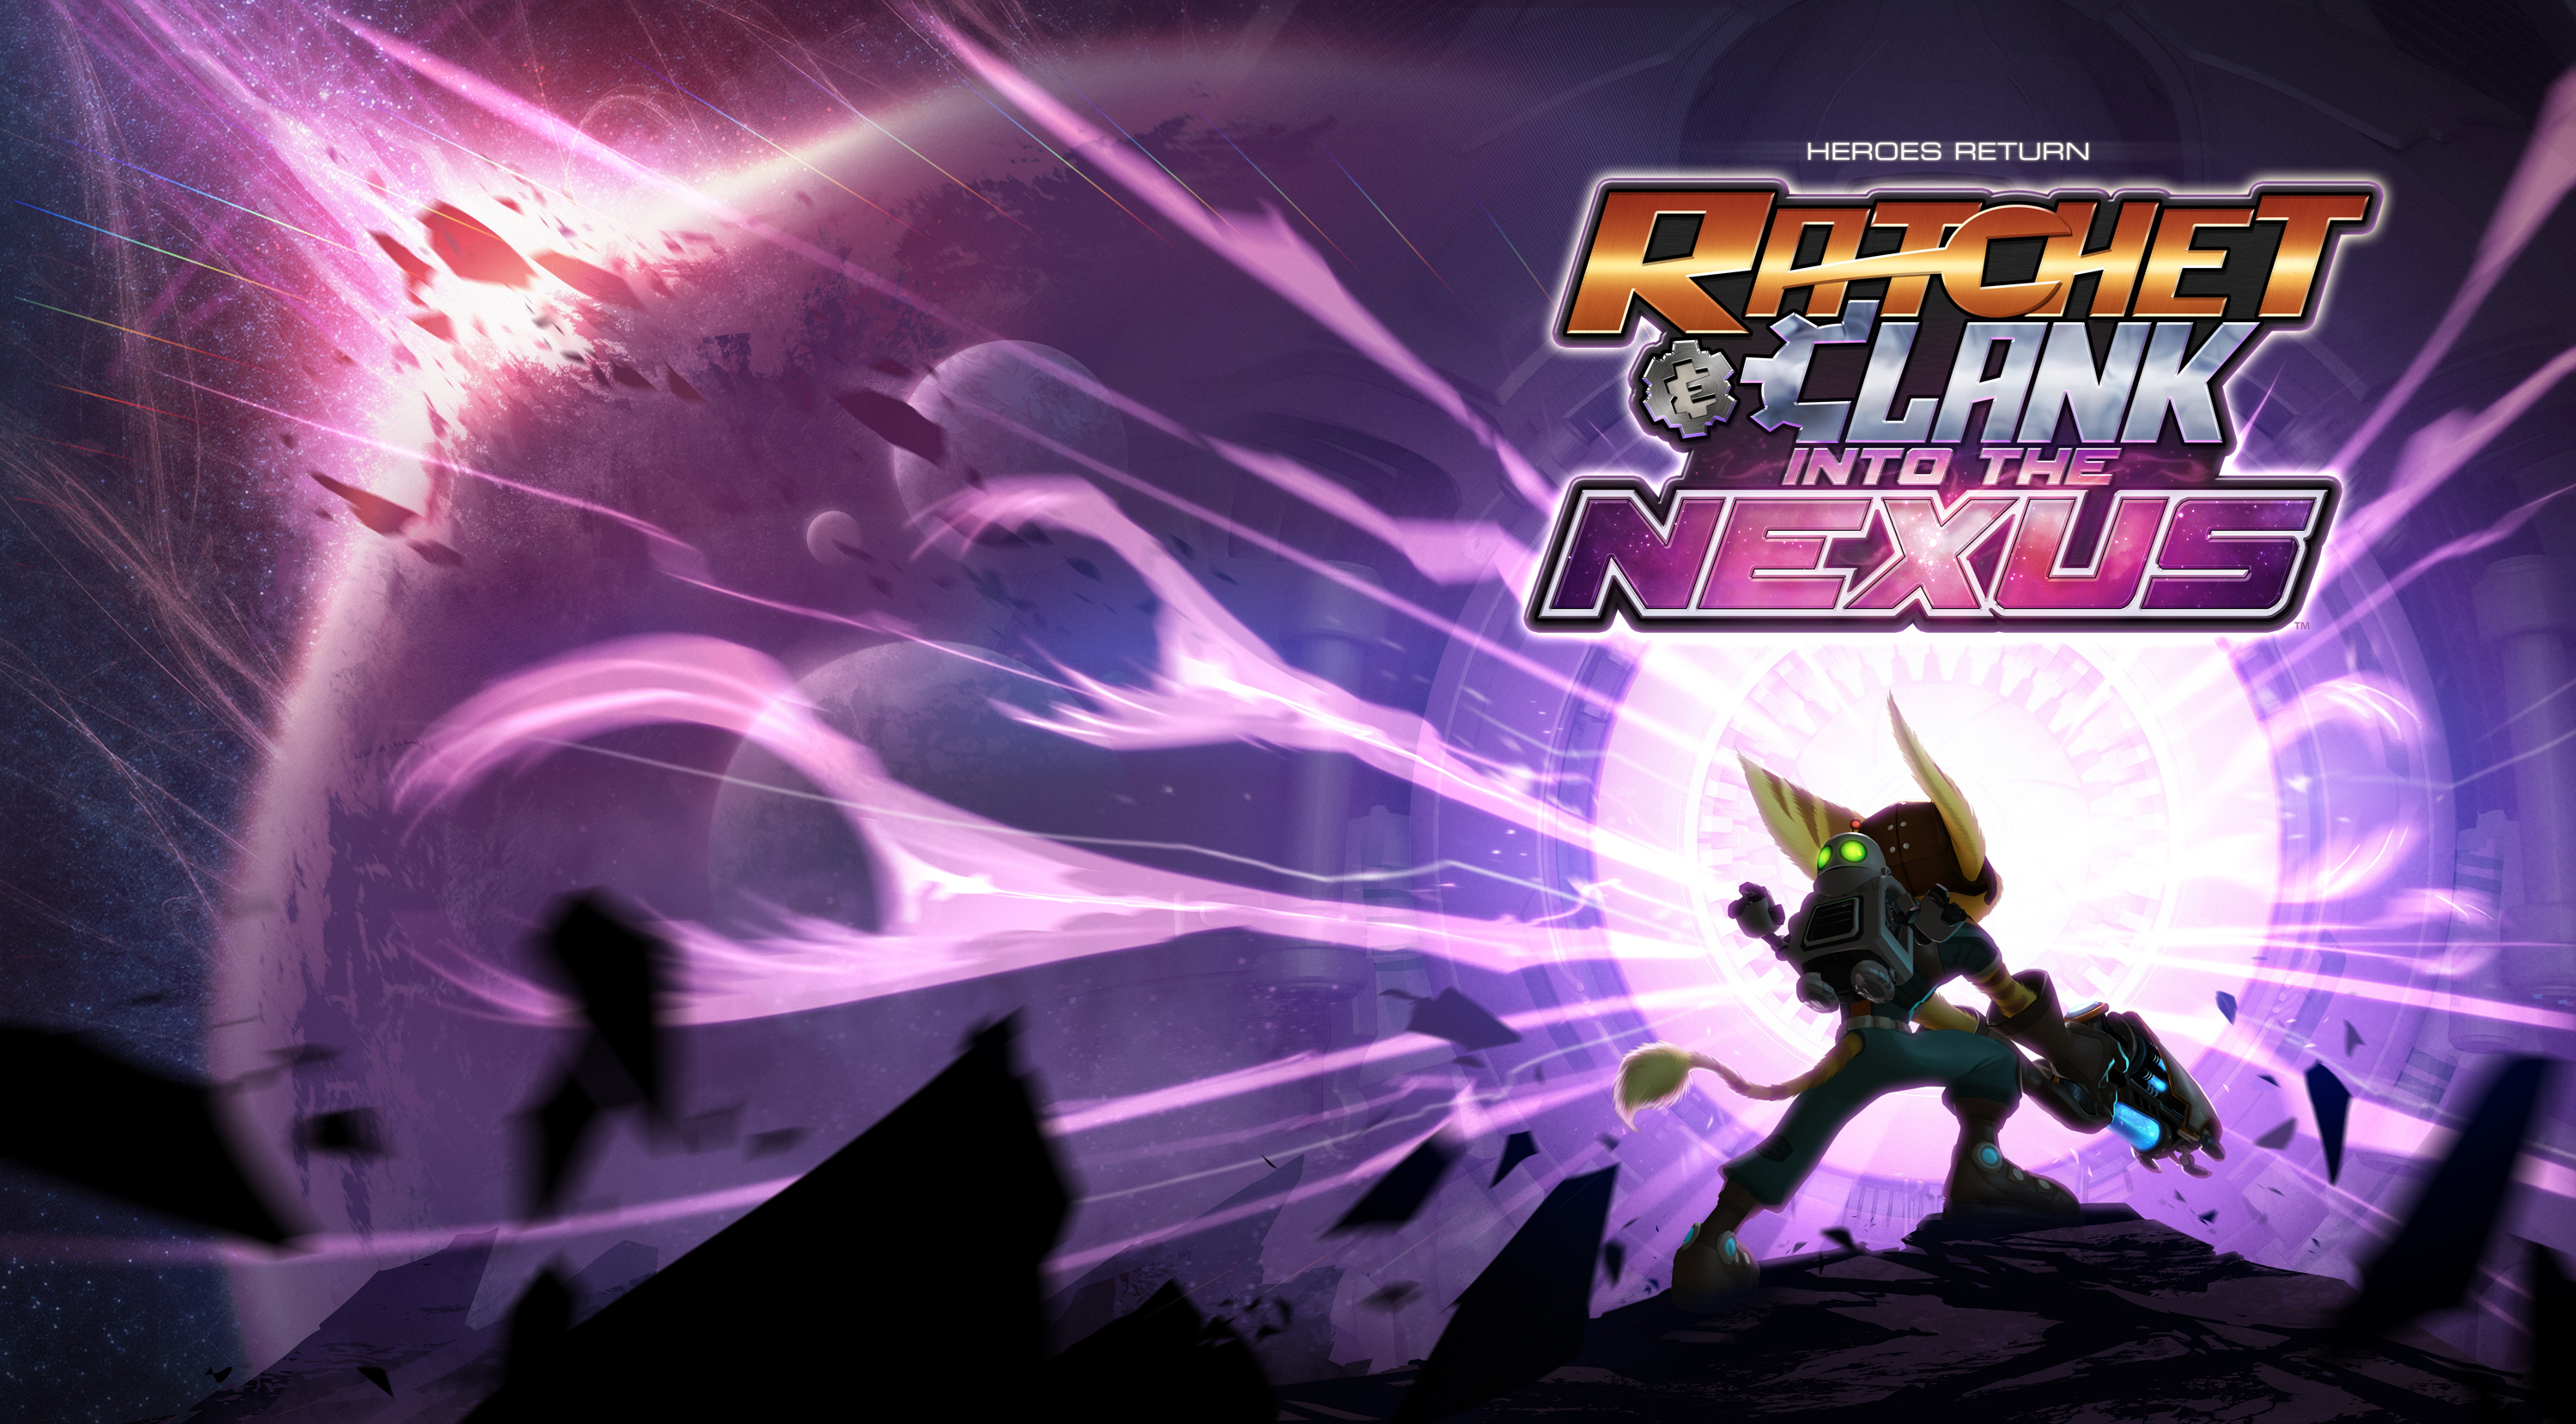 Ratchet e clank into the nexus